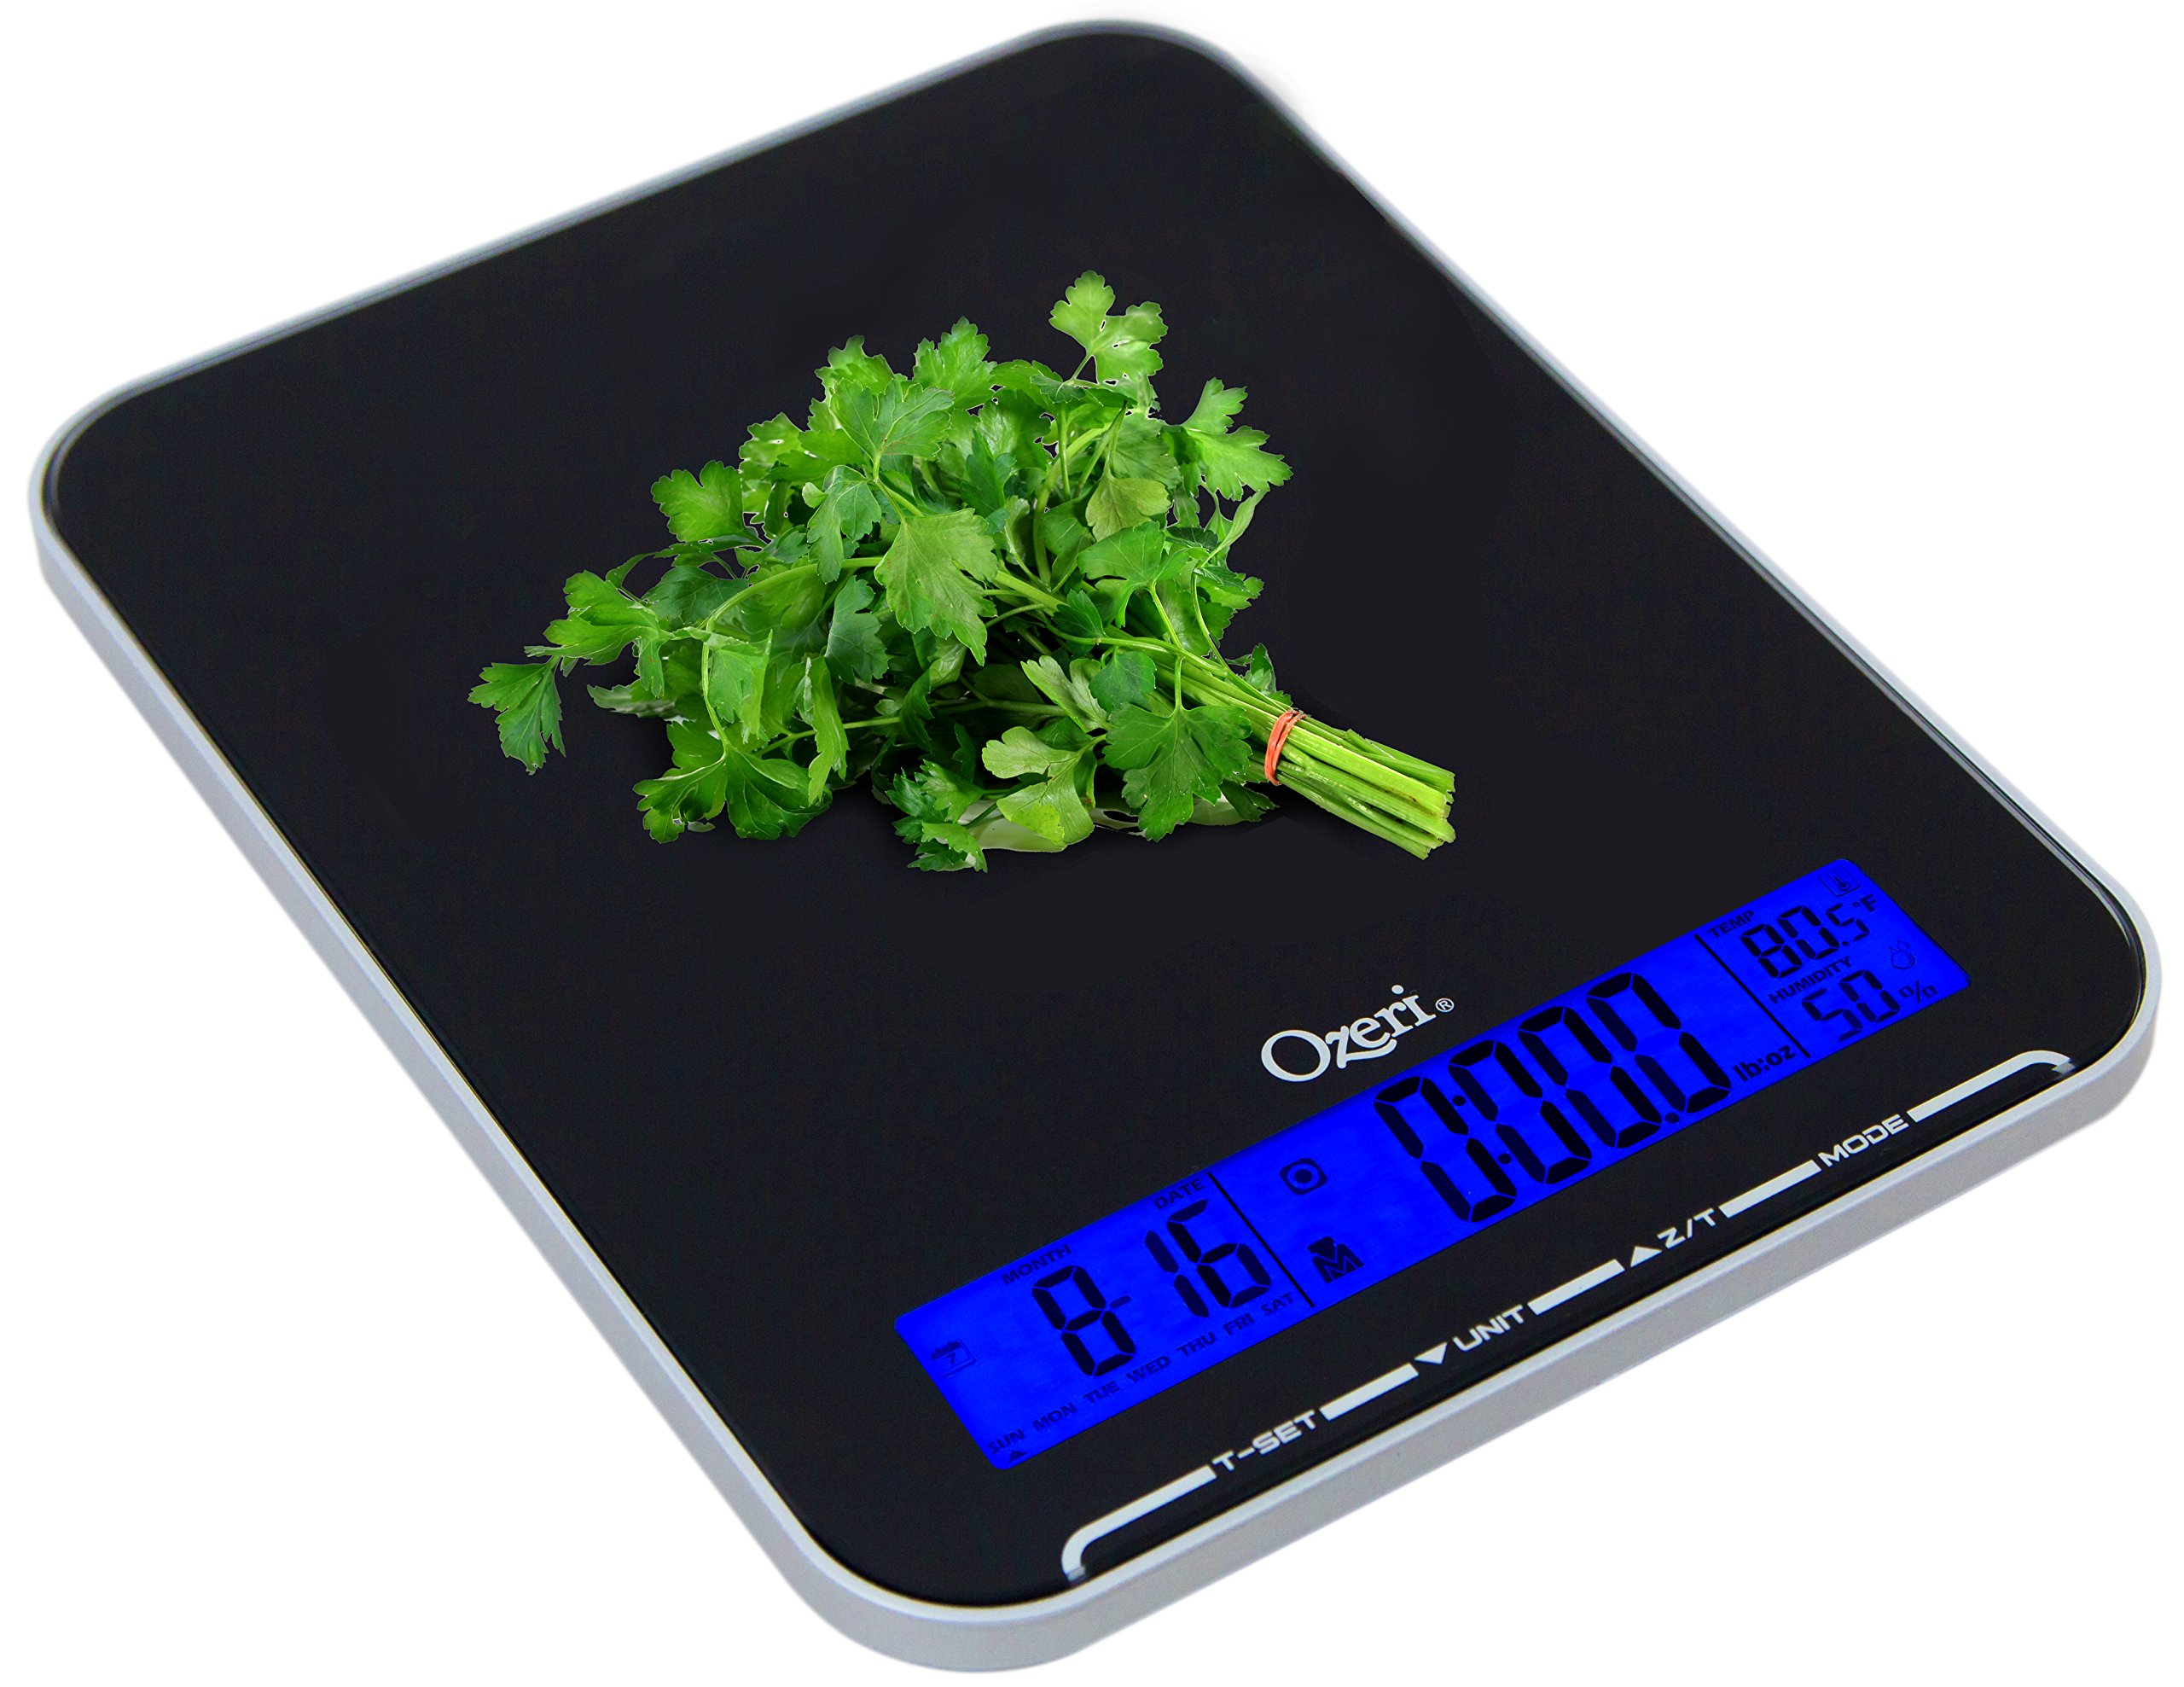 Ozeri Touch III 22 lbs (10 kg) Kitchen Scale in Tempered Glass, with Clock, Calendar, Temperature & Humidity Gauge